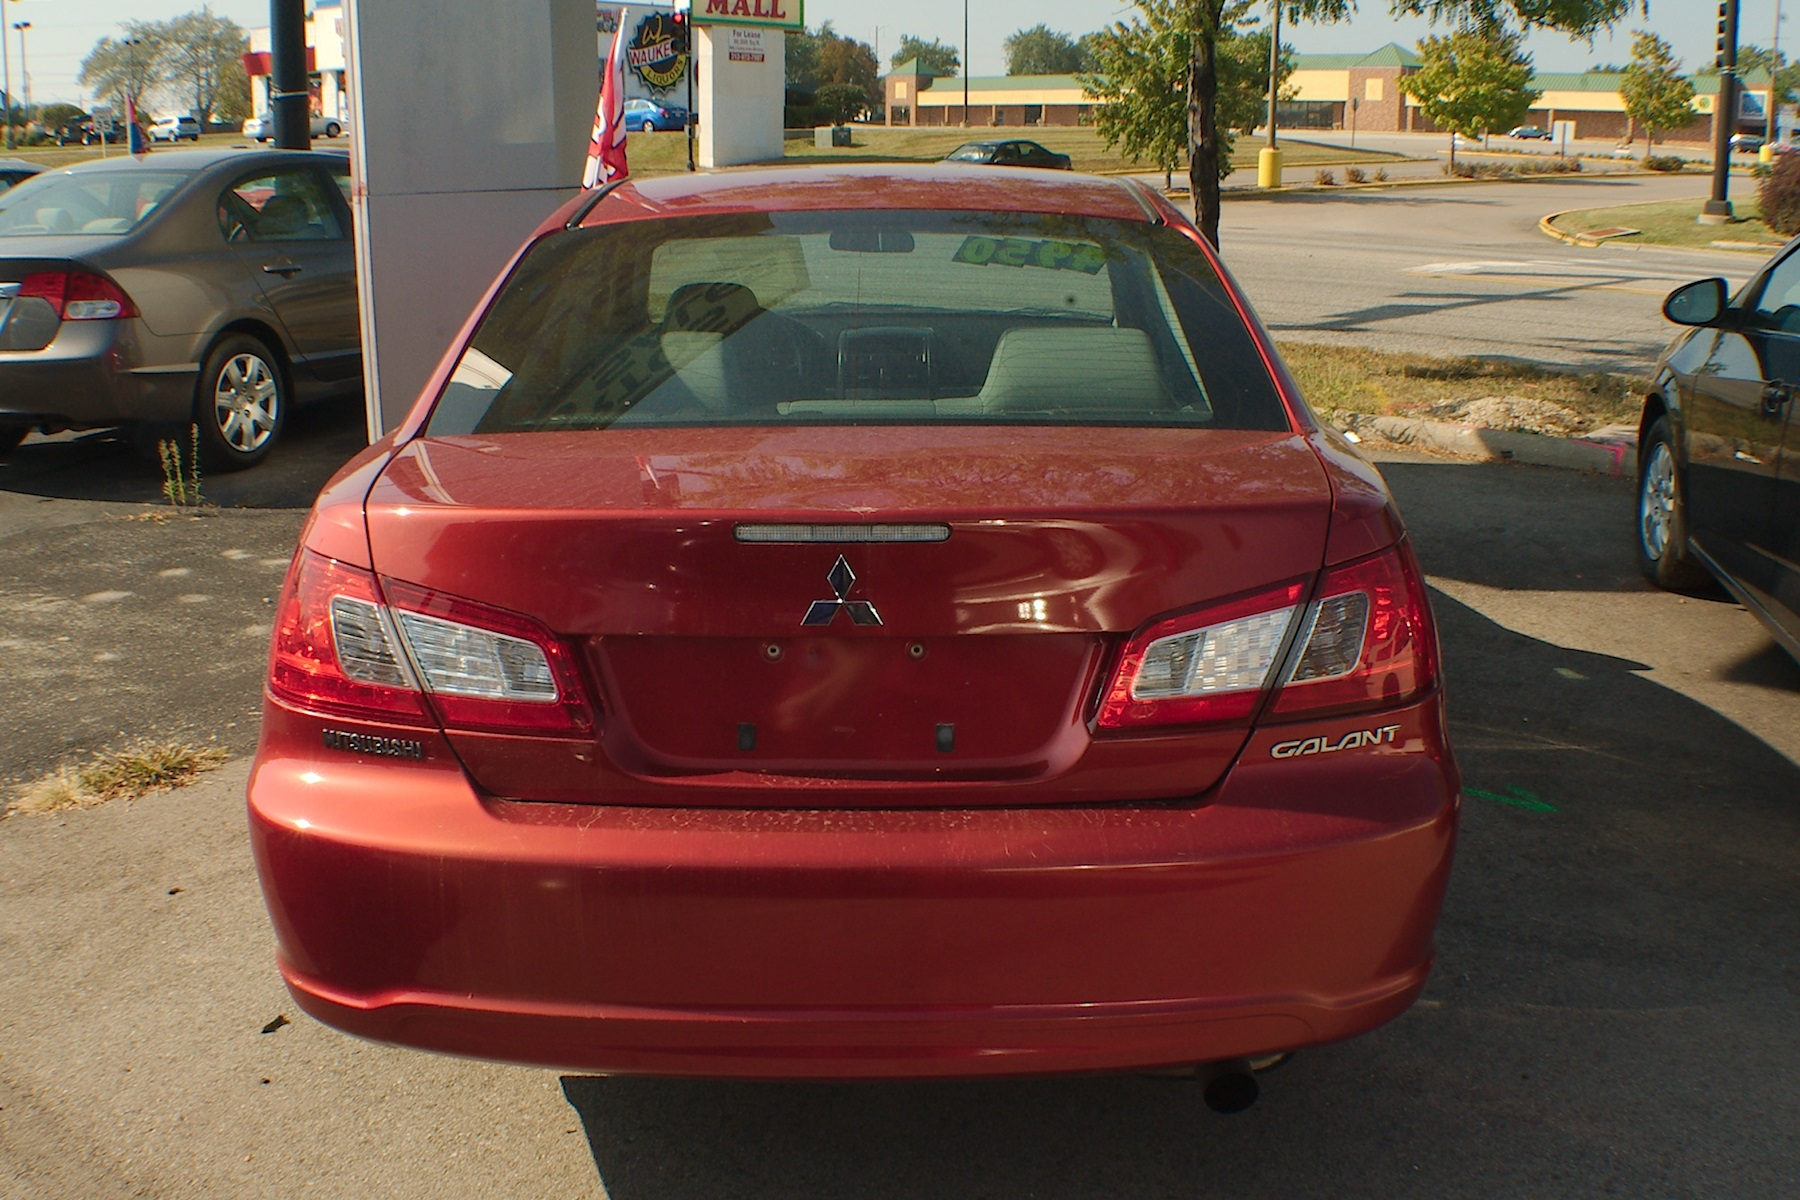 2011 Mitsubishi Galant Red Sedan Used Car Sale Buffalo Grove Deerfield Fox Lake Antioch